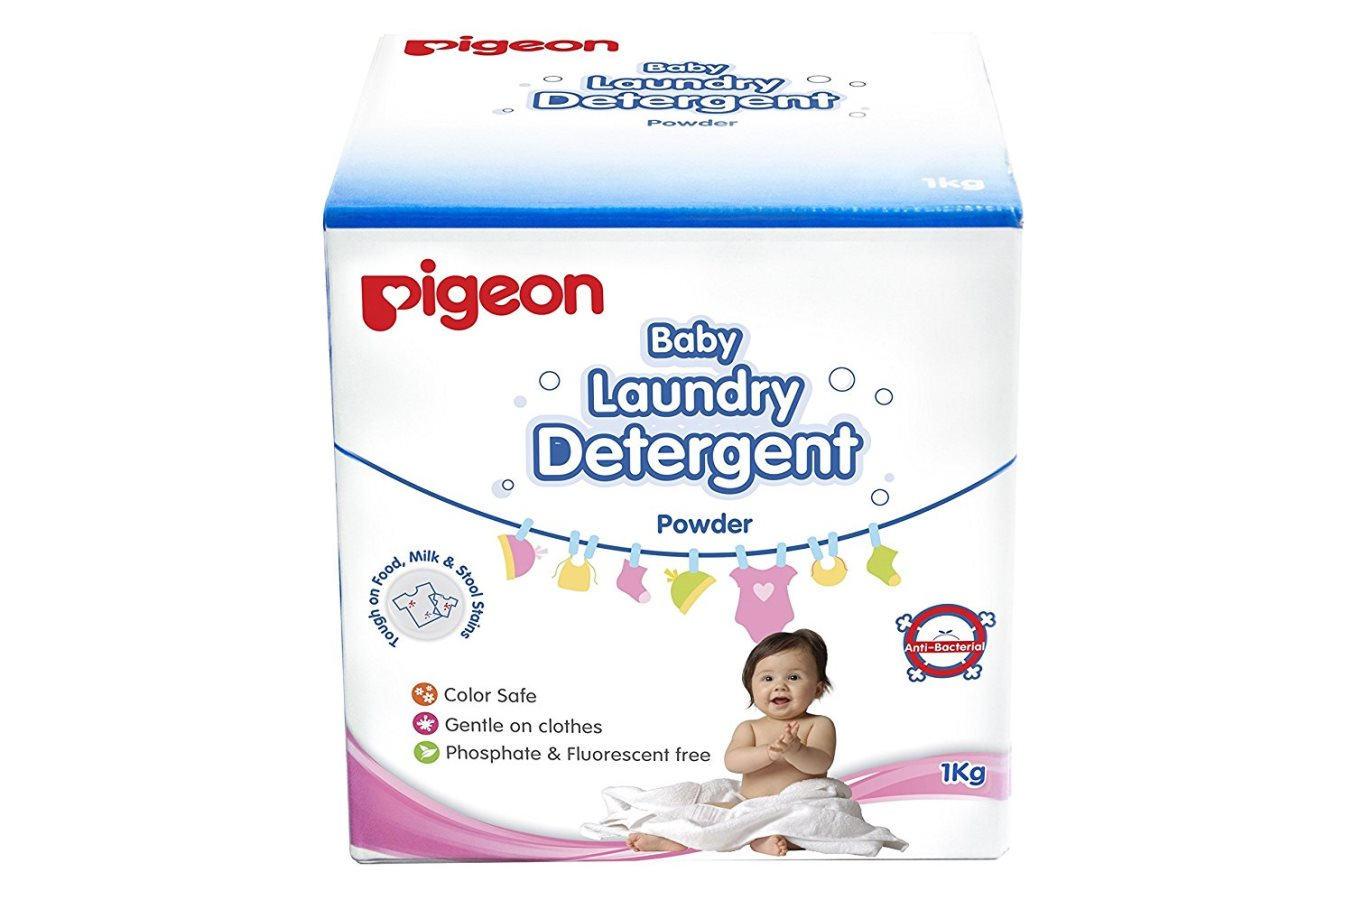 Buy Pigeon Baby Laundry Detergent Powder online United States of America [ USA ]